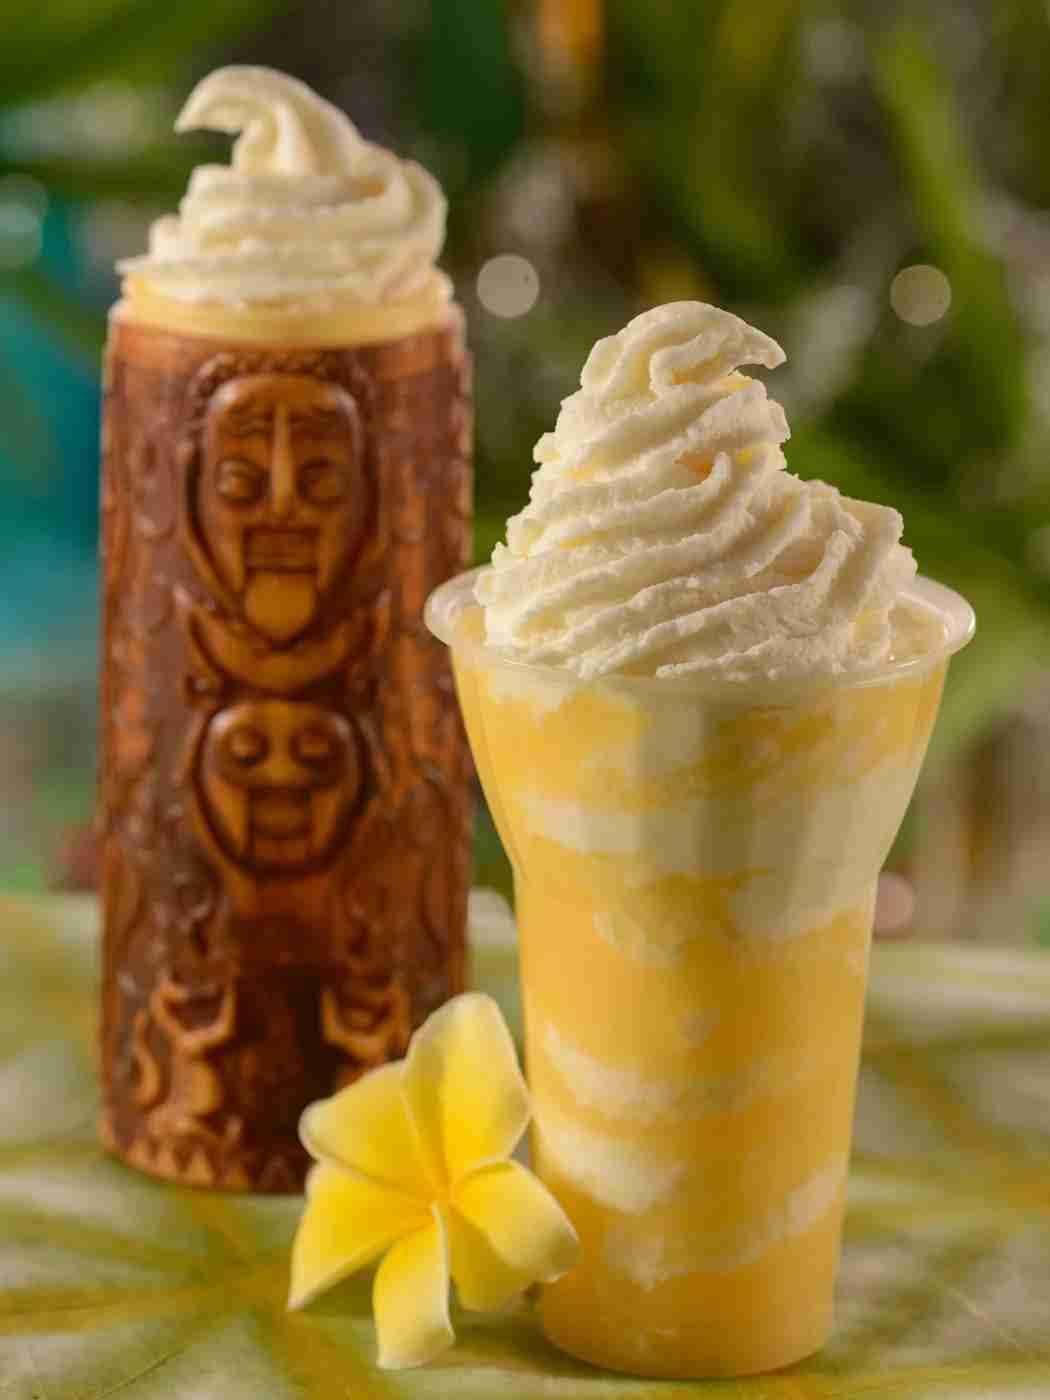 Dole Whip from Disney